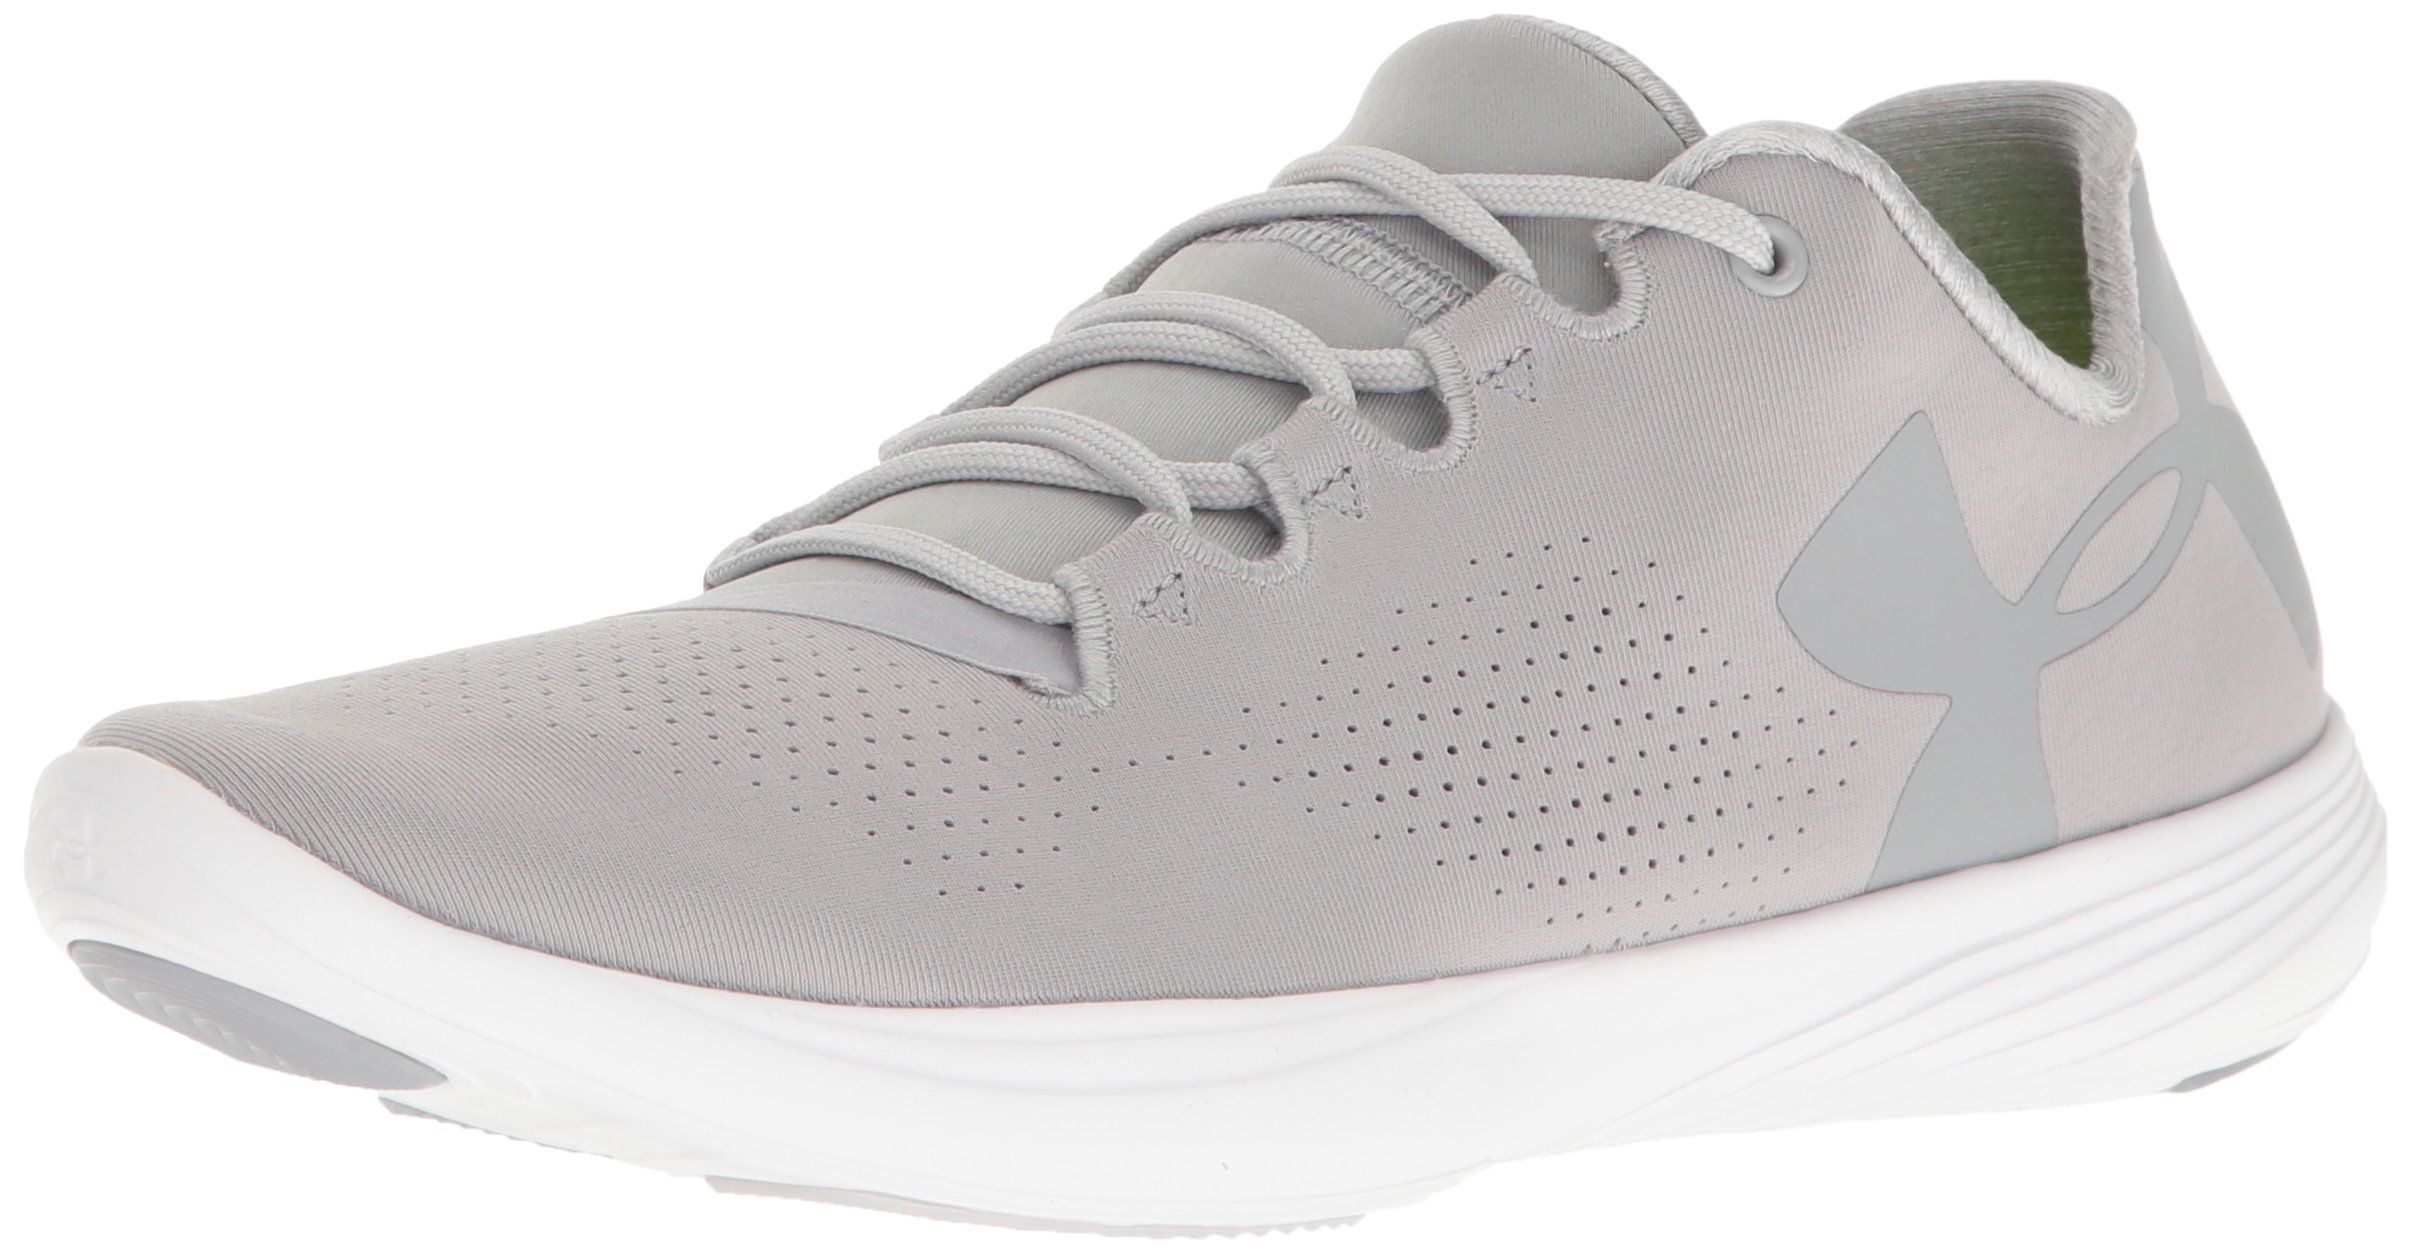 Under Armour Damen Women's Street Precision Low Training Shoes Turnschuh, Overca